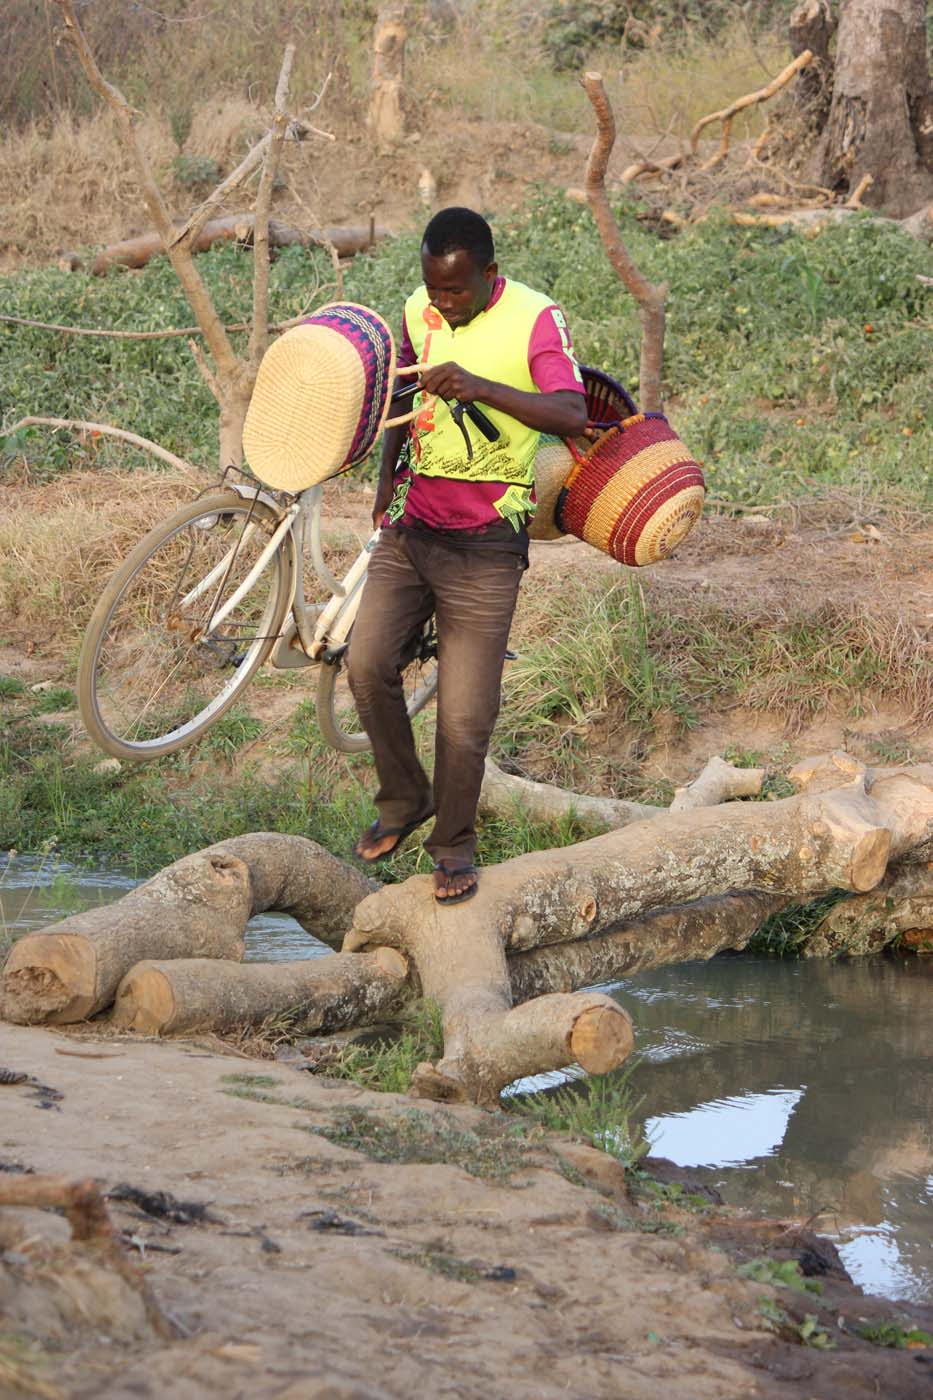 Baskets in one hand and a bicycle in the other